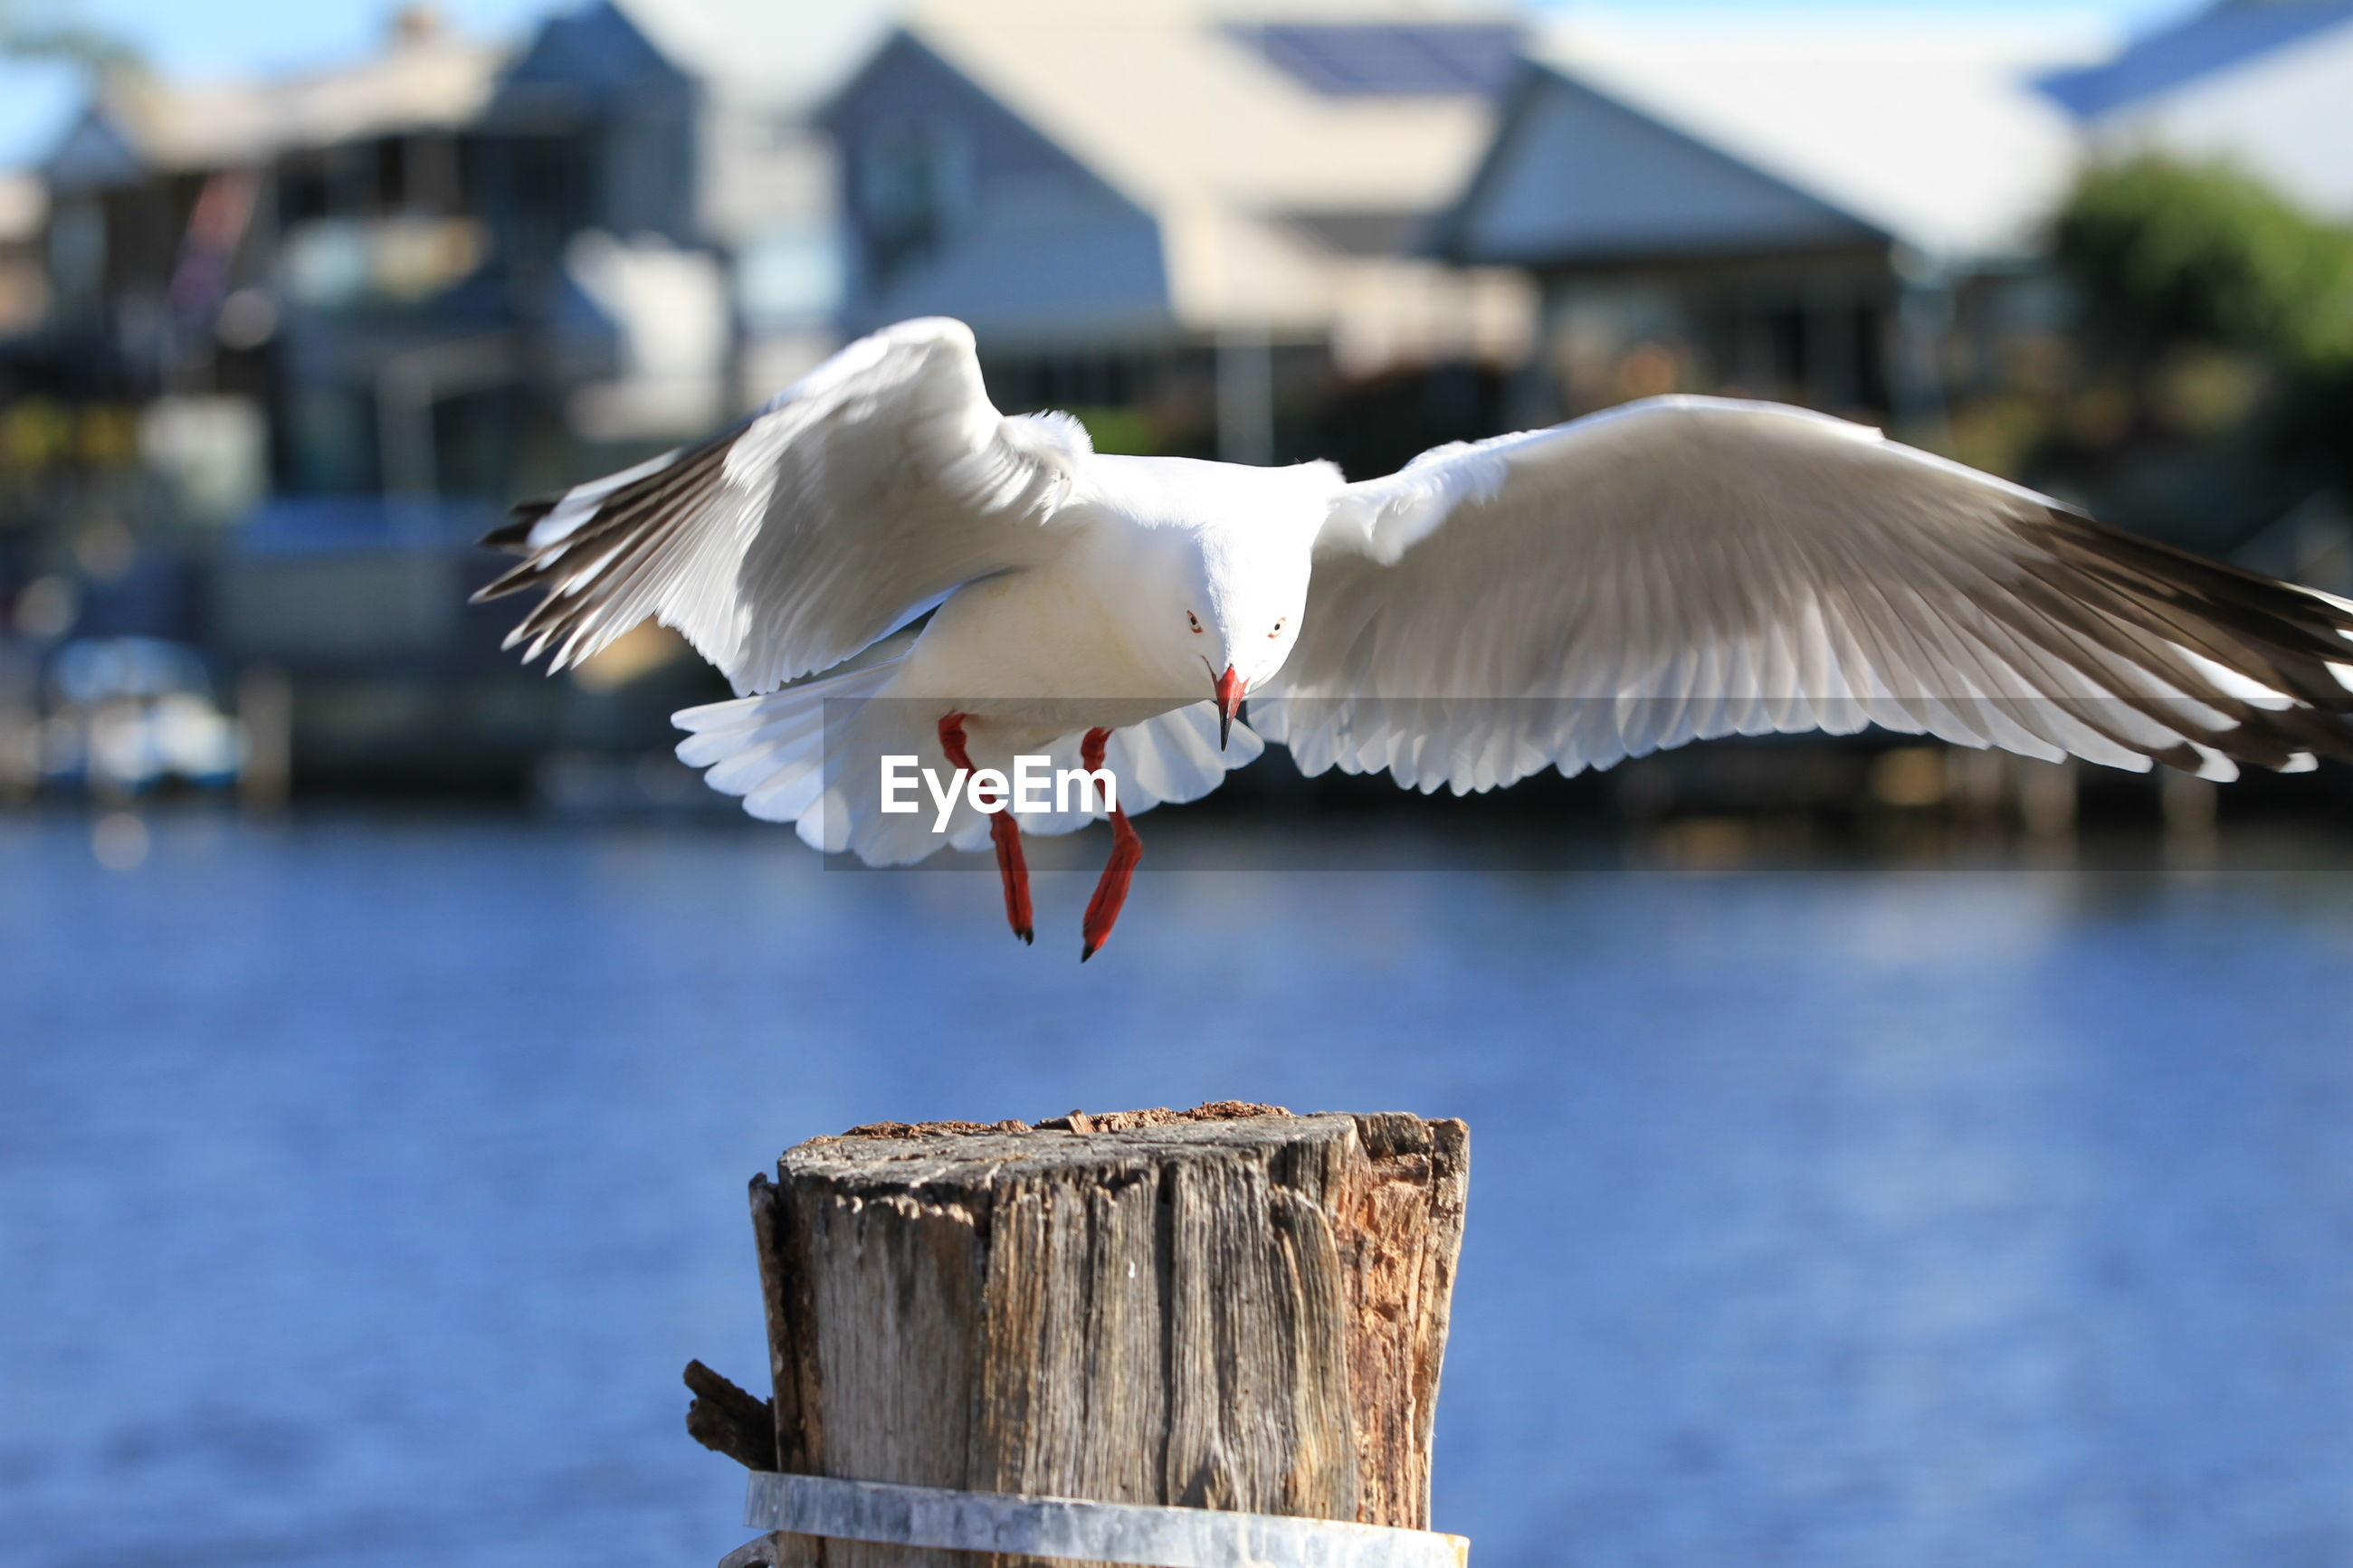 SEAGULL FLYING OVER WOODEN POST WITH REFLECTION